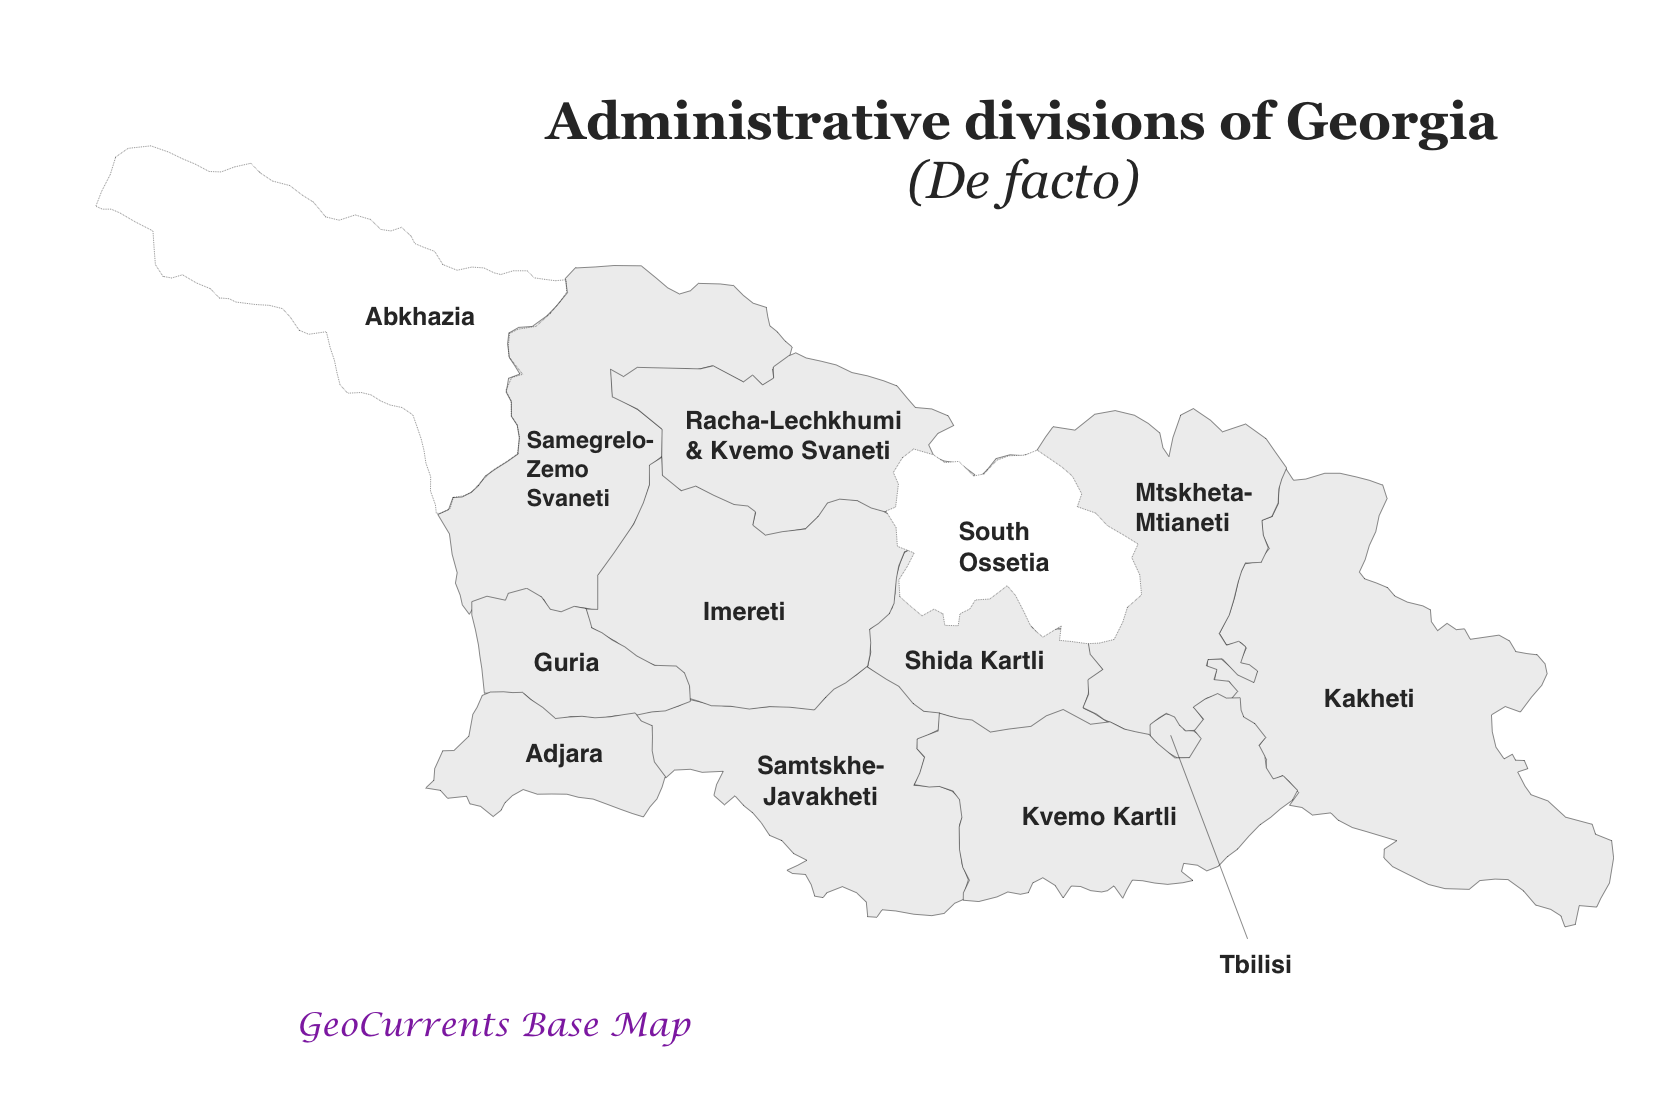 Customizable Maps Of Turkey Oman Germany And Georgia GeoCurrents - Georgia kakheti map